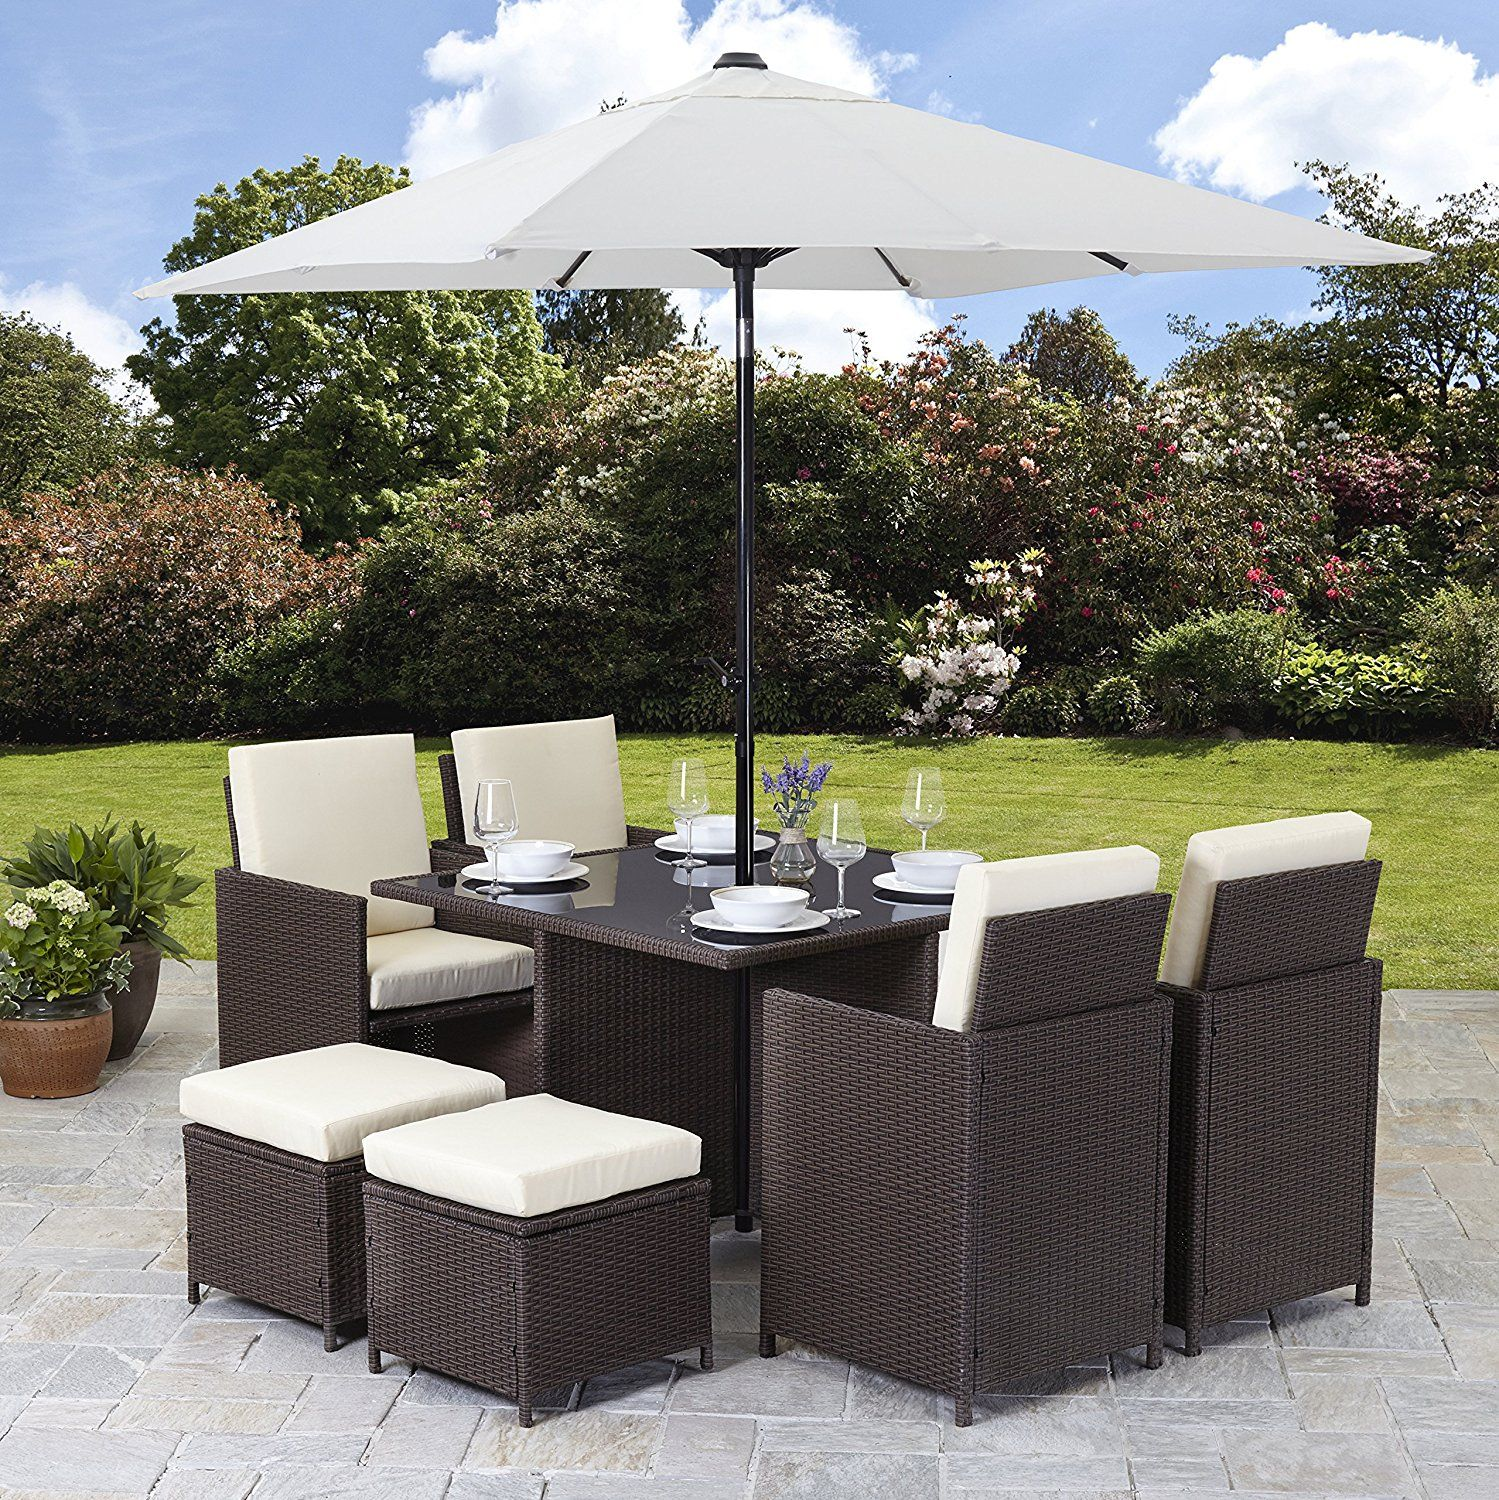 Rattan Cube Garden Furniture Set 8 seater outdoor wicker 9pcs with ...